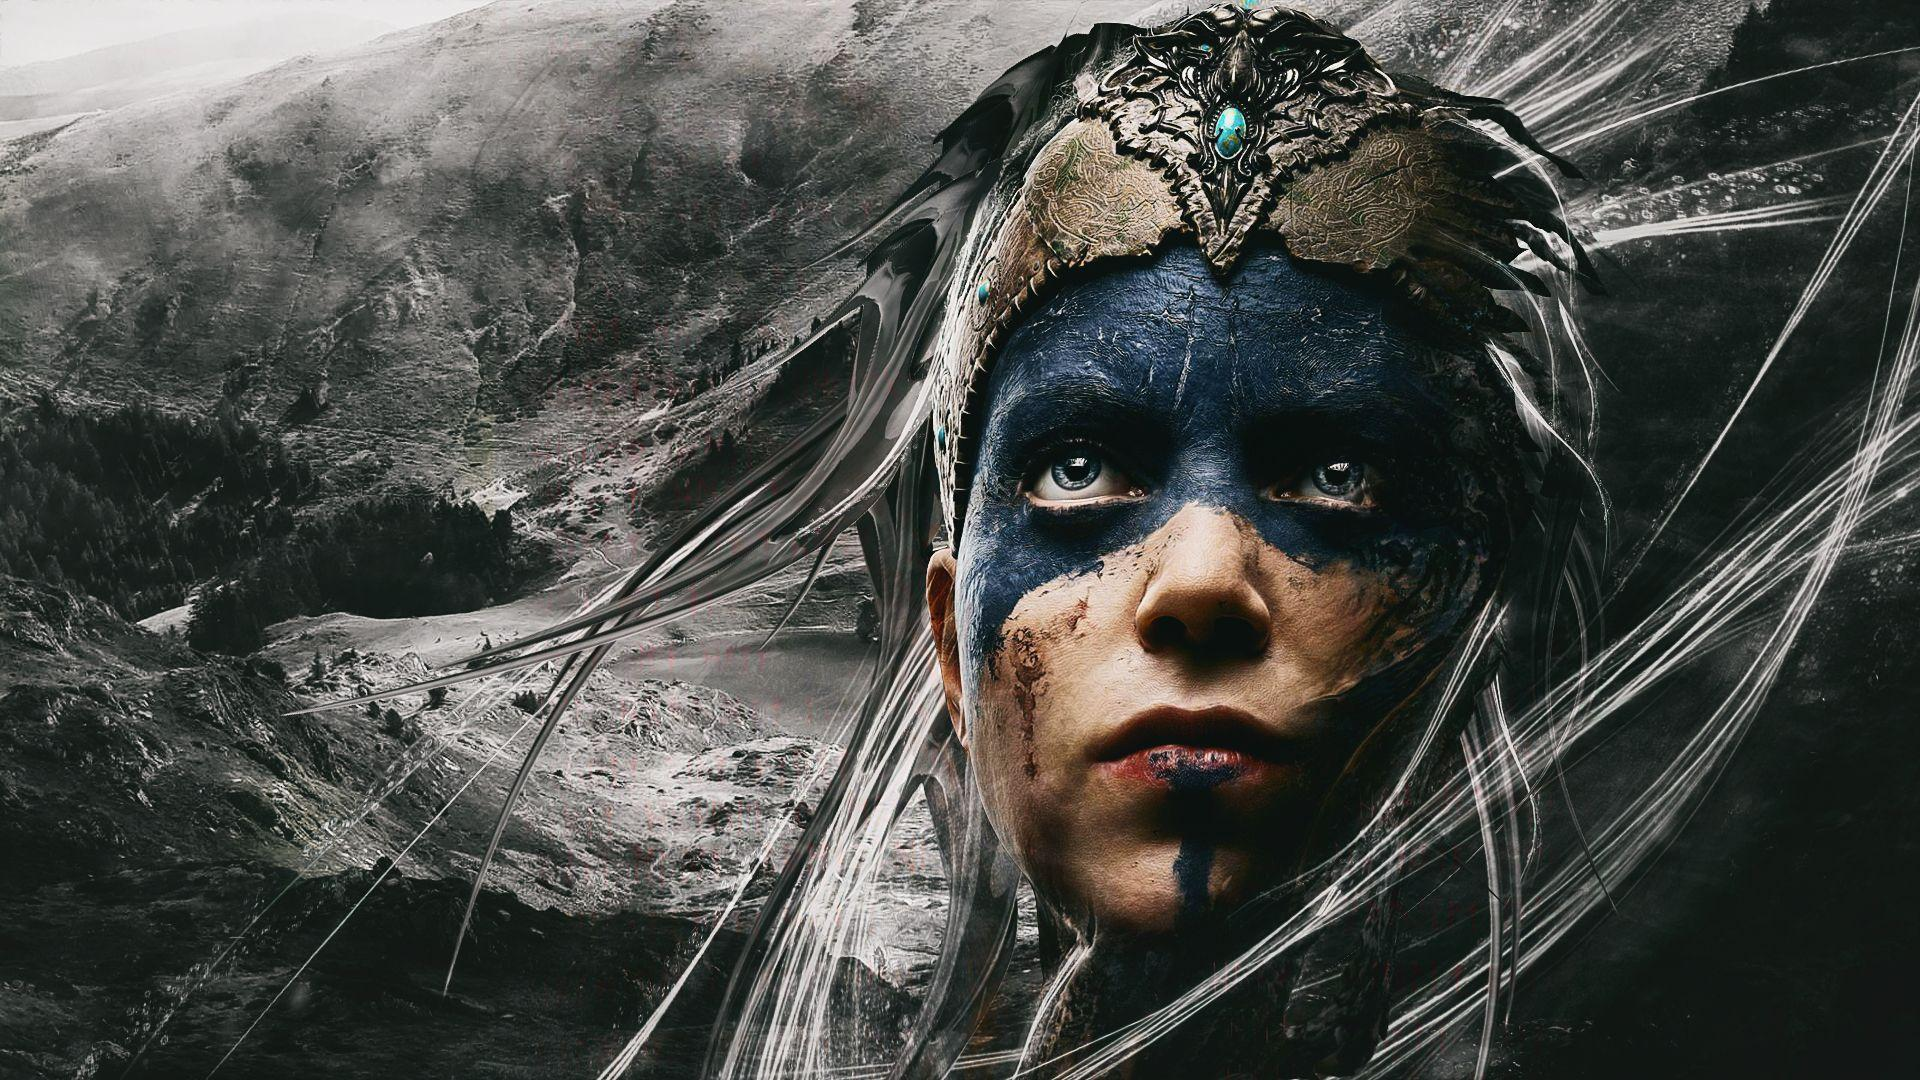 Hellblade Senua's Sacrifice Wallpapers Desktop